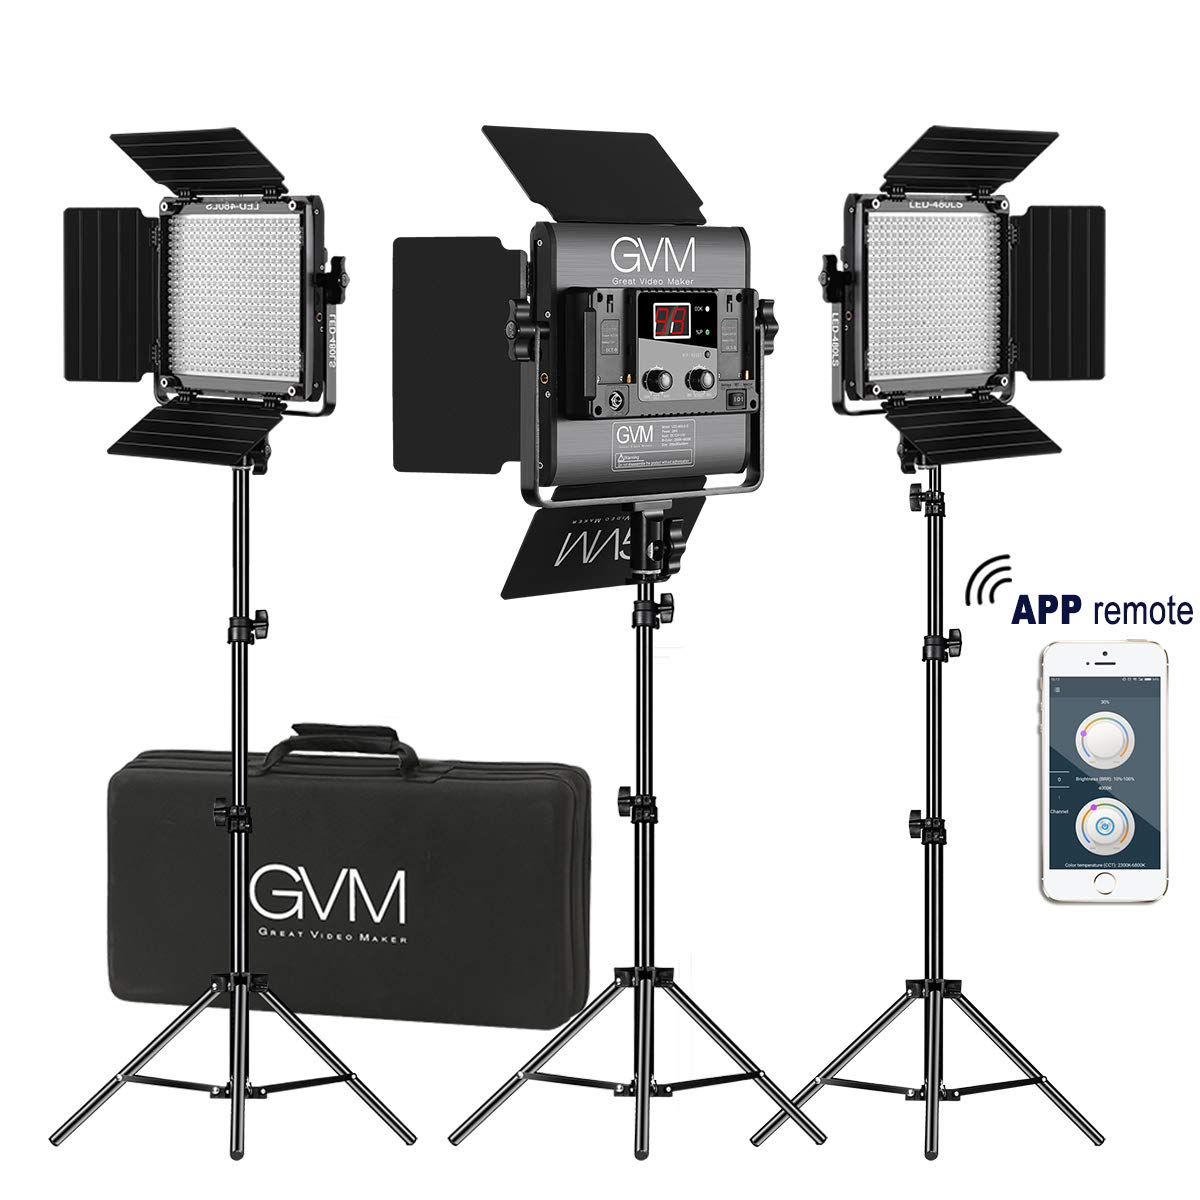 GVM 3 Pack LED Video Lighting Kits with APP Control, Bi-Color Variable 2300K~6800K with Digital Display Brightness of 10~100% for Video Photography, CRI97+ TLCI97 Led Video Light Panel +Barndoor by GVM Great Video Maker